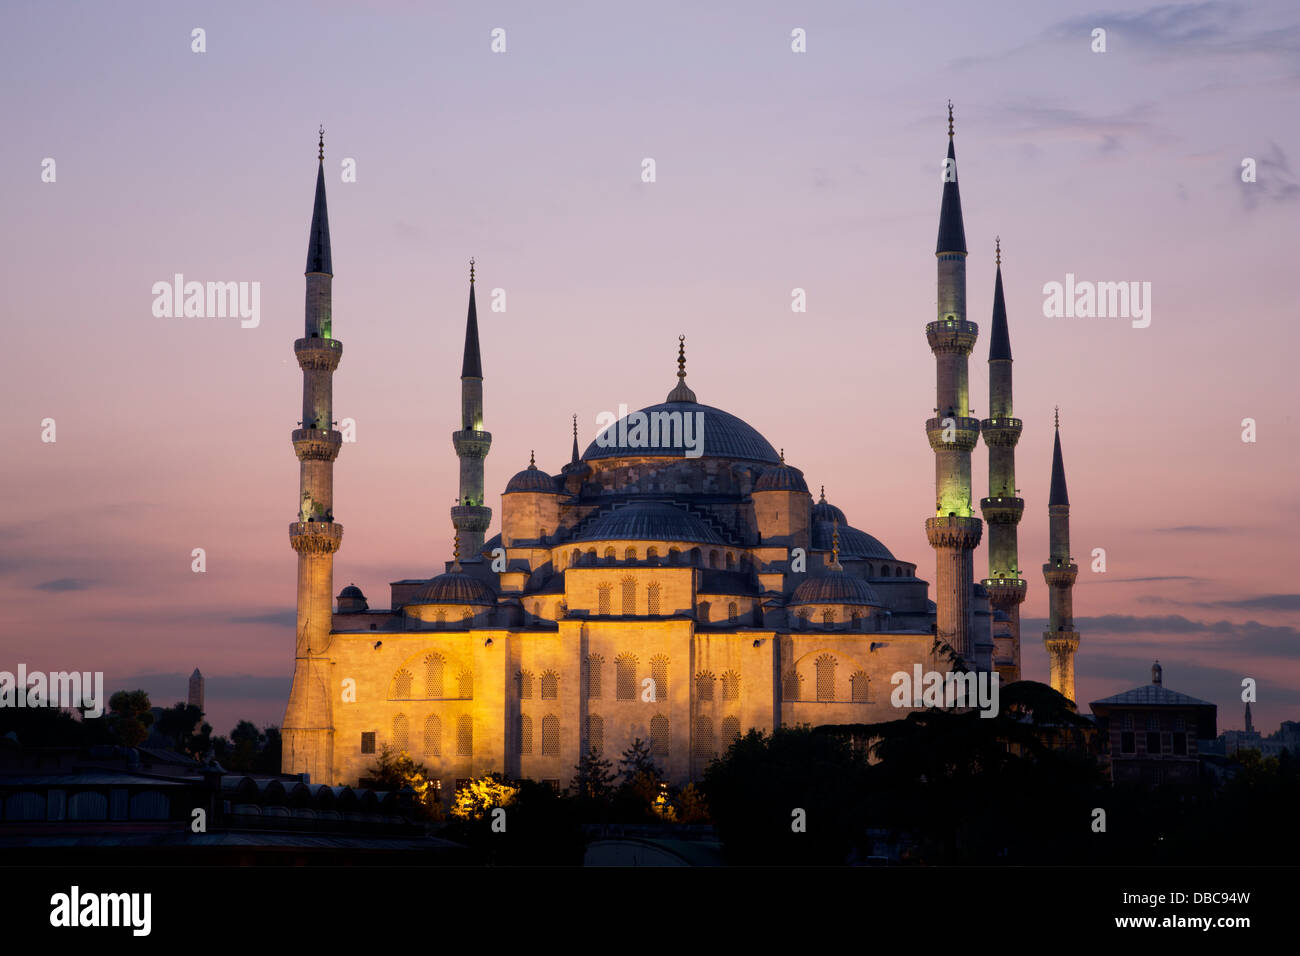 The Blue Mosque in Istanbul at dusk - Stock Image